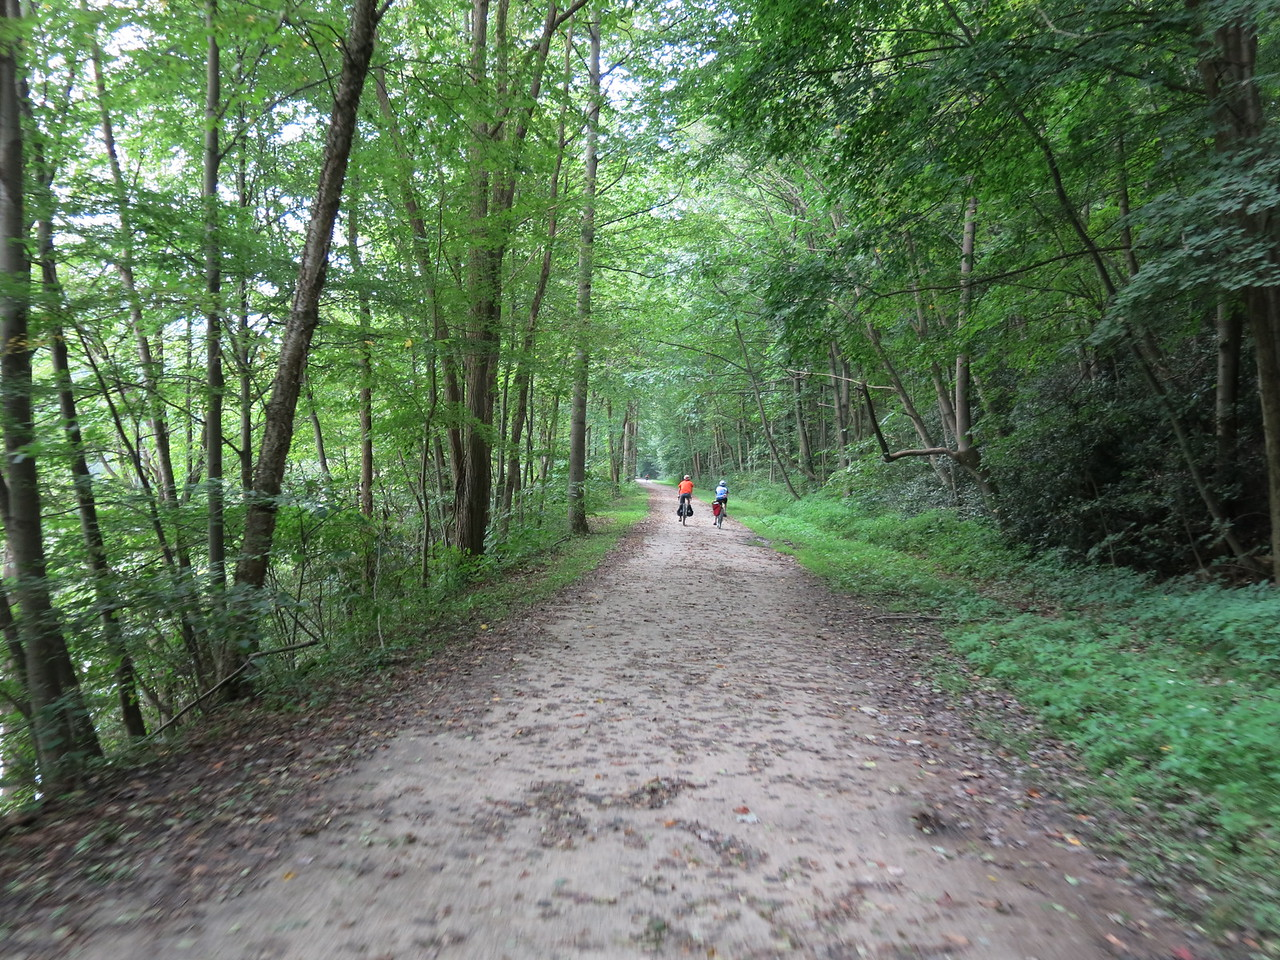 The trail continues to follow the Yough from Ohiopyle to Confluence